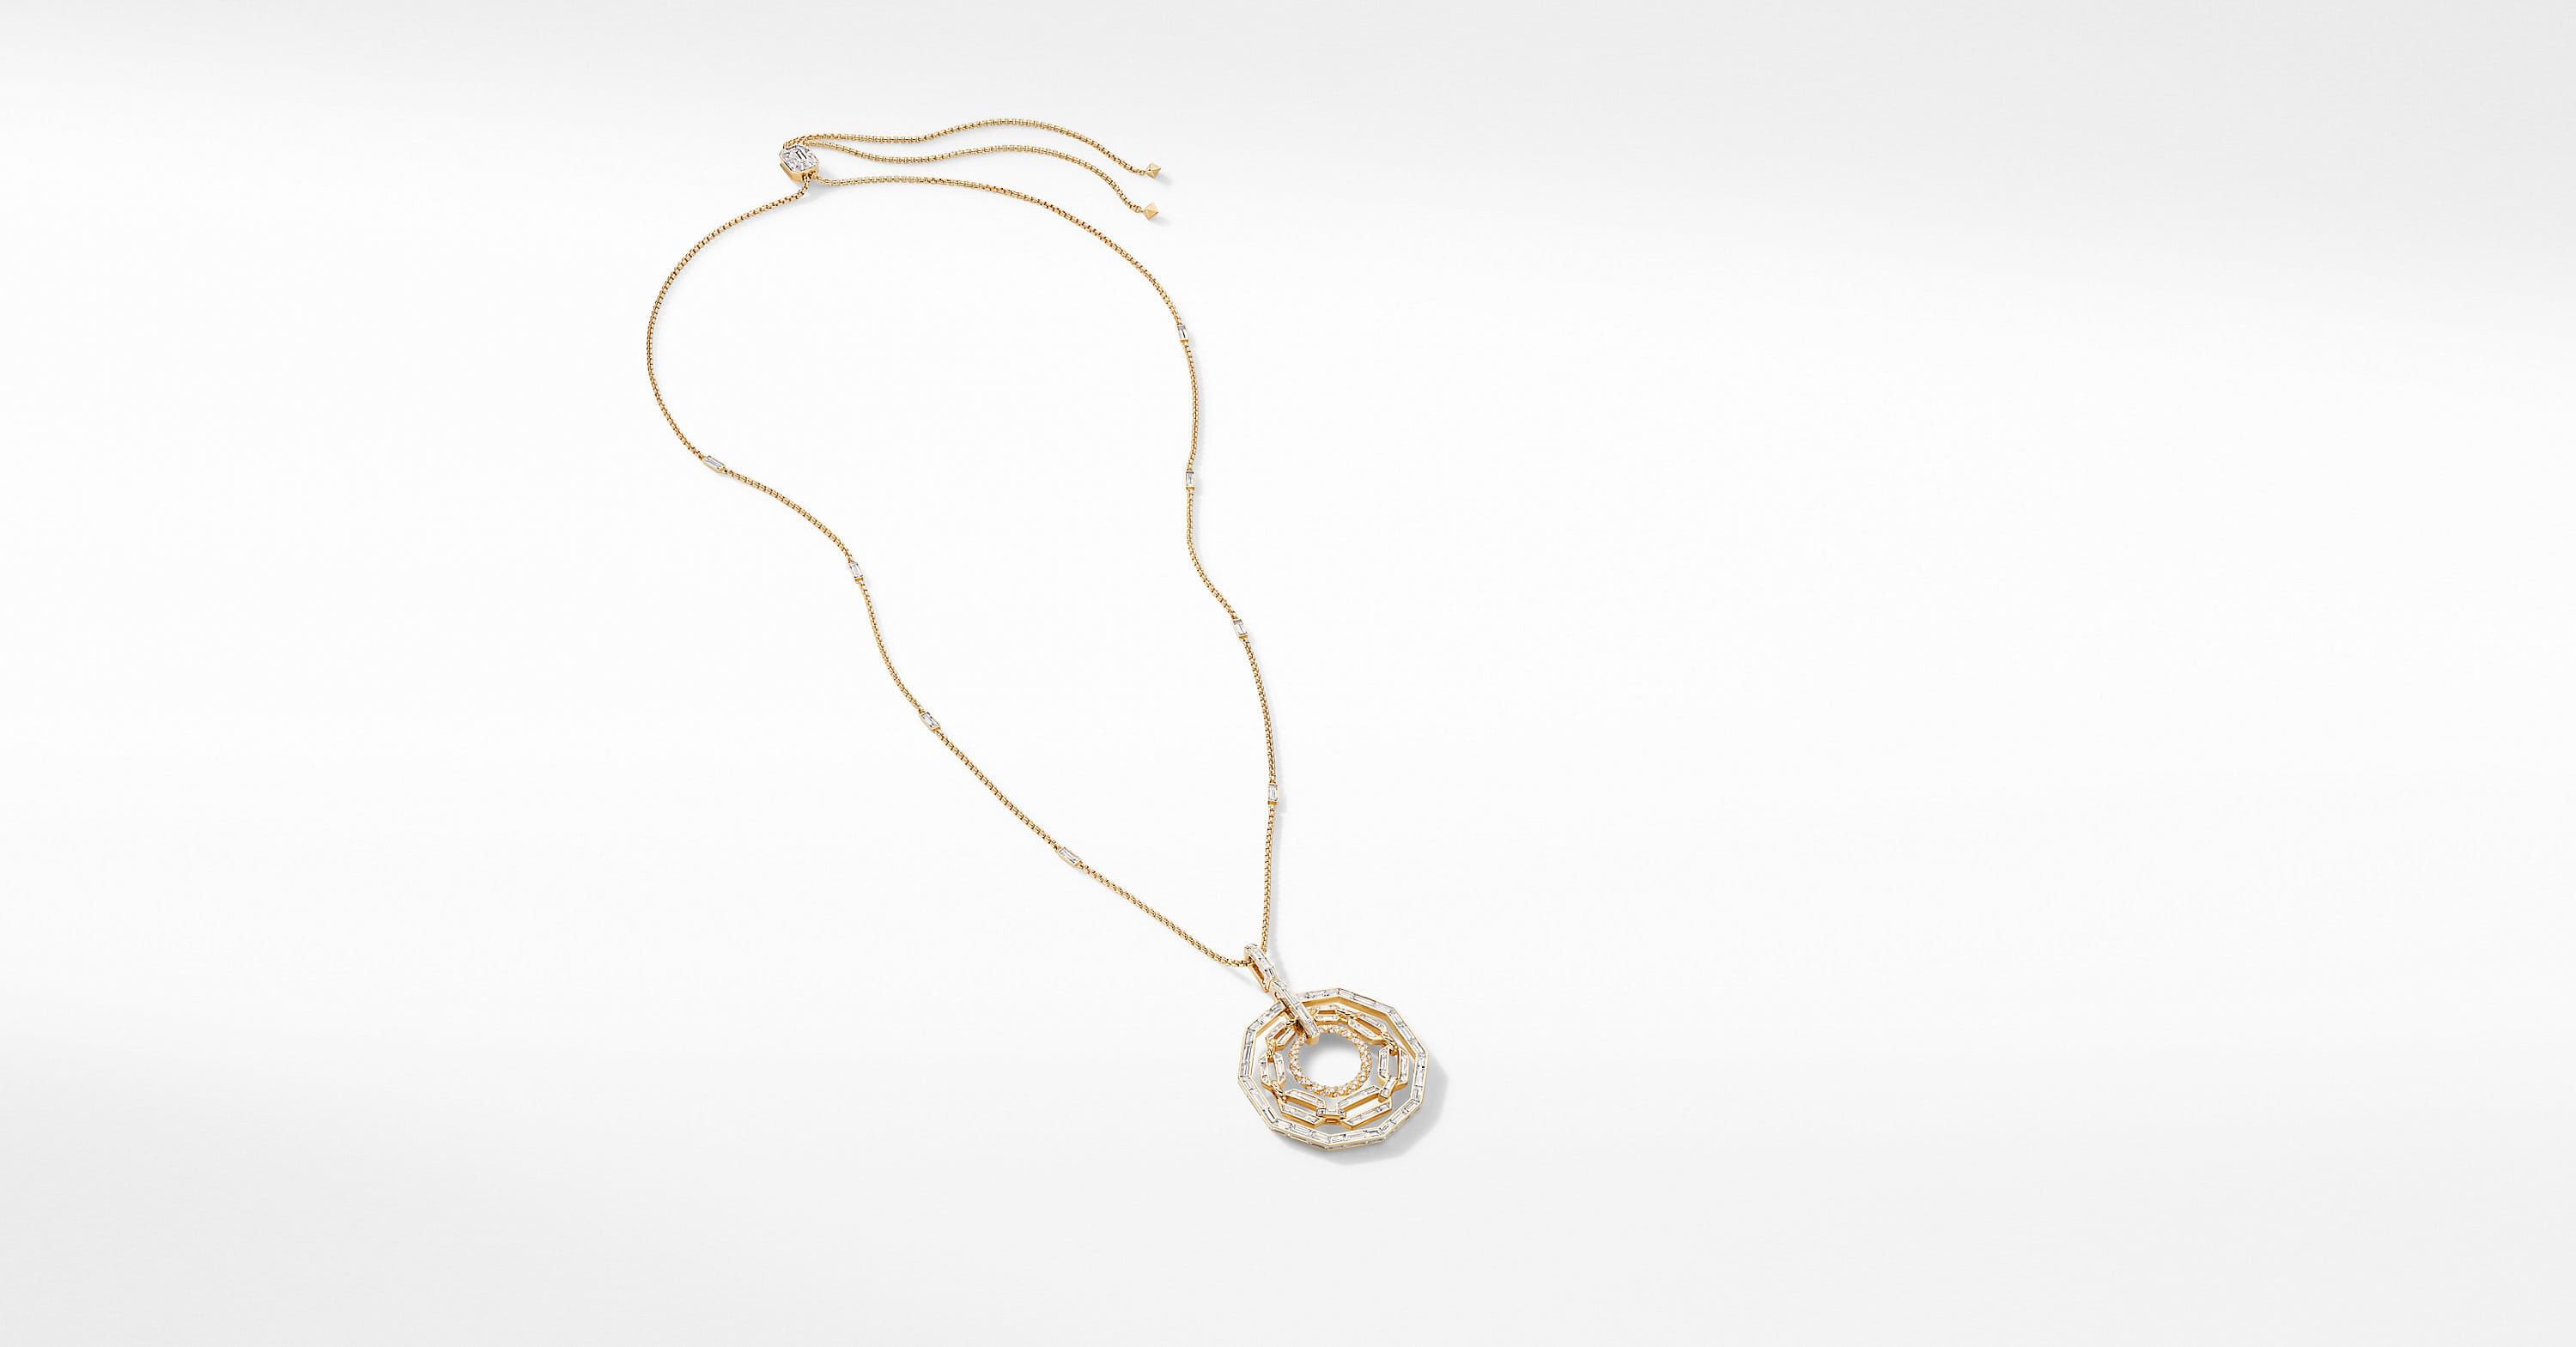 Stax Pendant Necklace in Yellow Gold with Diamonds